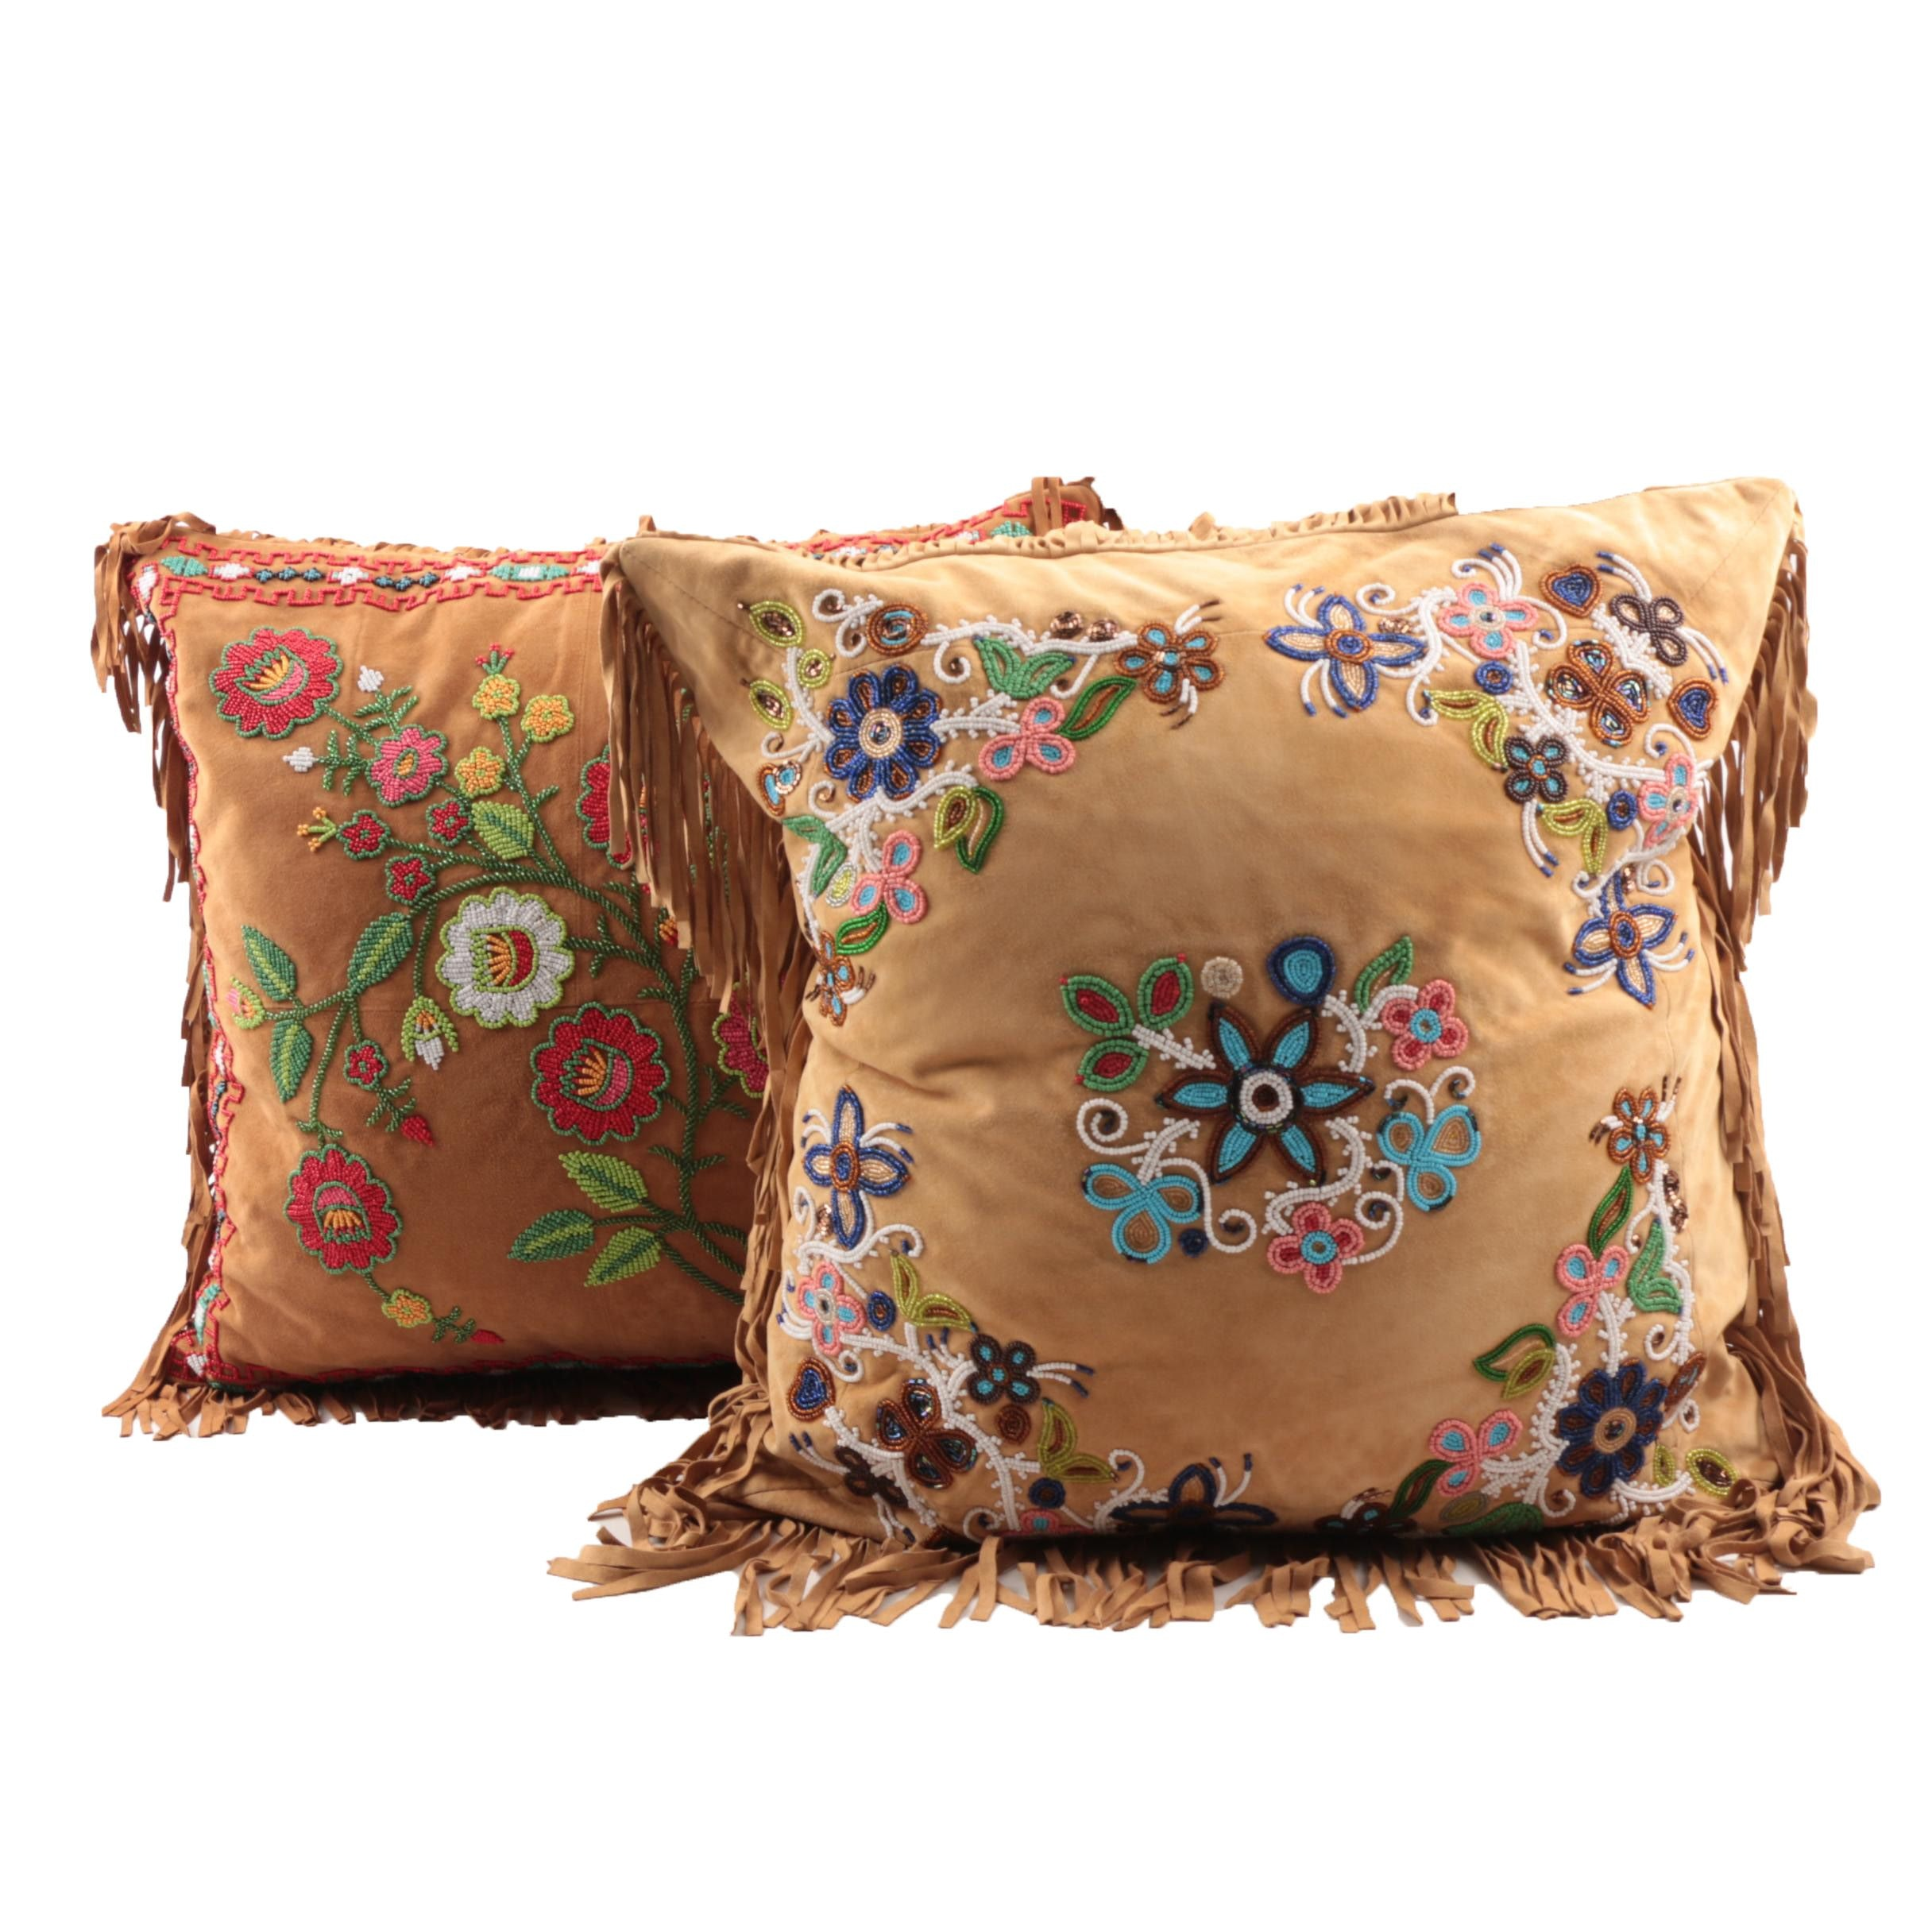 Double D Ranch and Tasha Polizzi Bead Embroidered Leather Accent Pillows